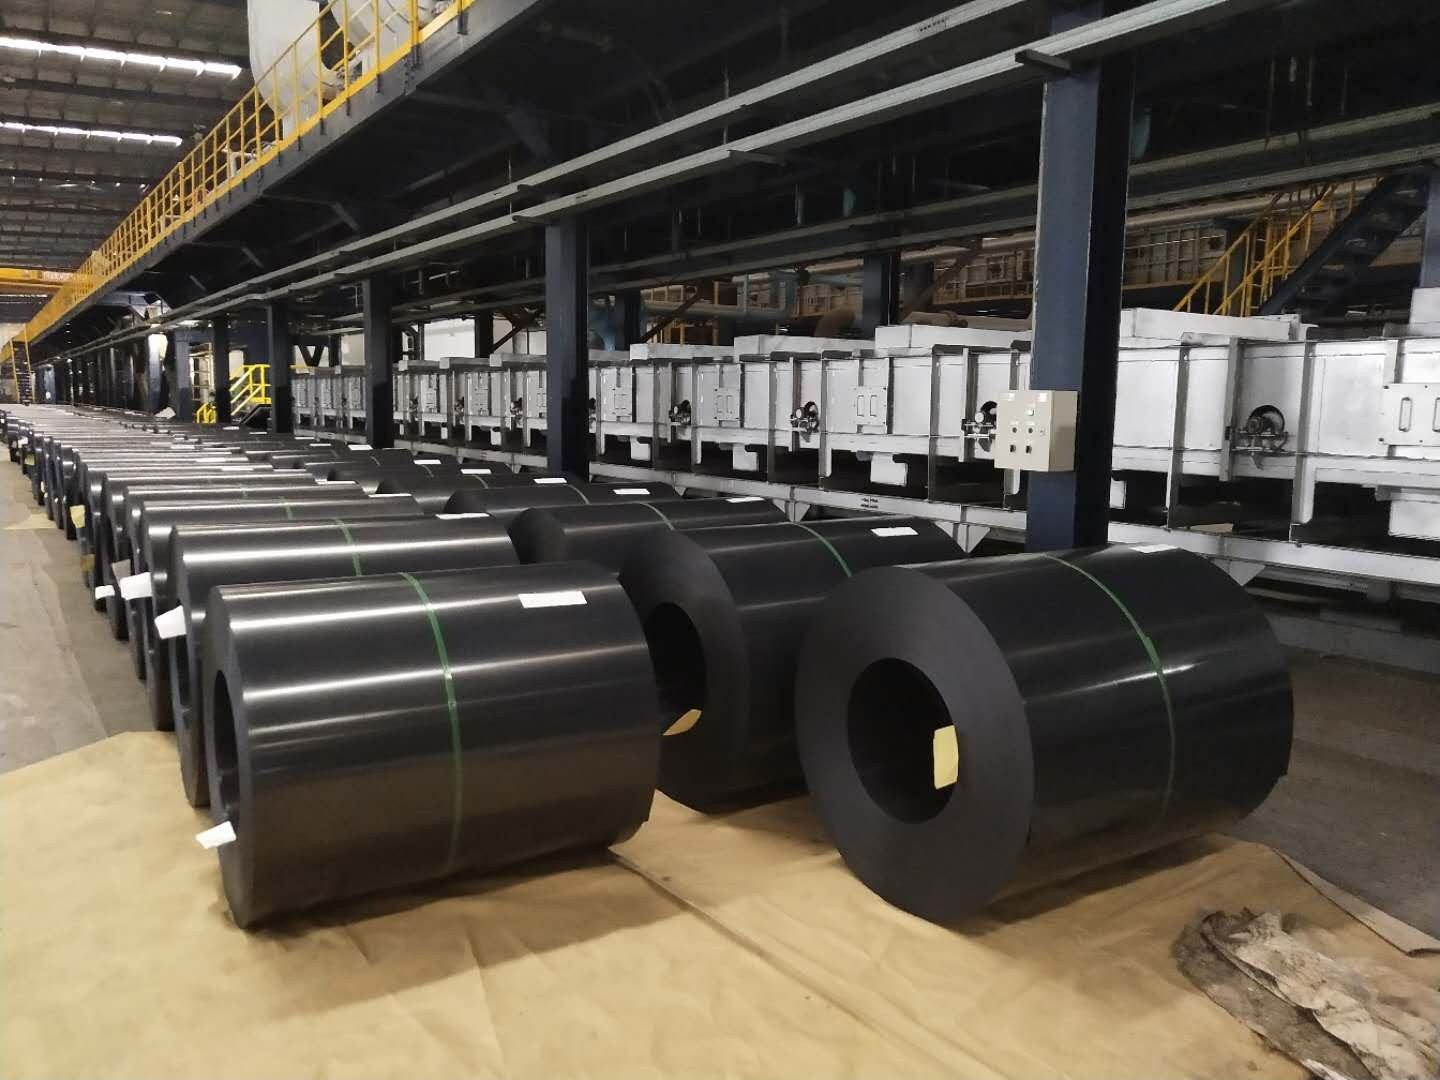 Black Anneal Sheets Manufacturers, Black Anneal Sheets Factory, Supply Black Anneal Sheets